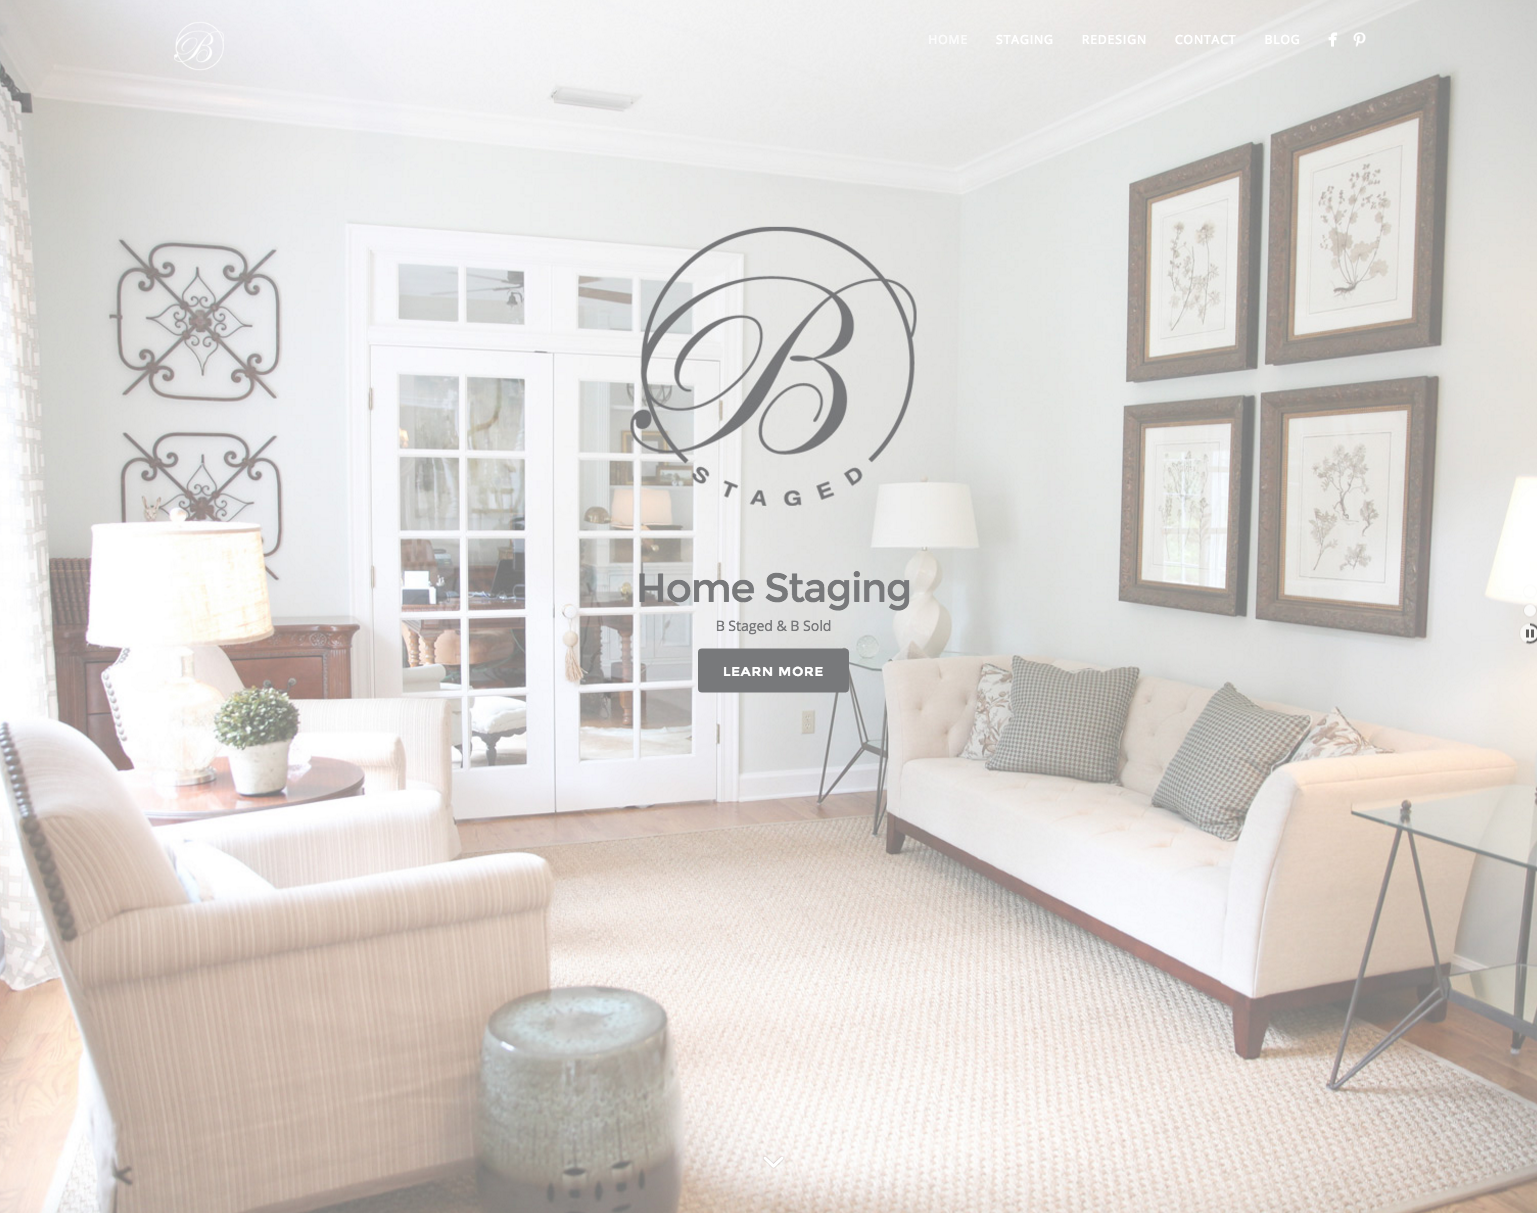 Home Staging Website Design